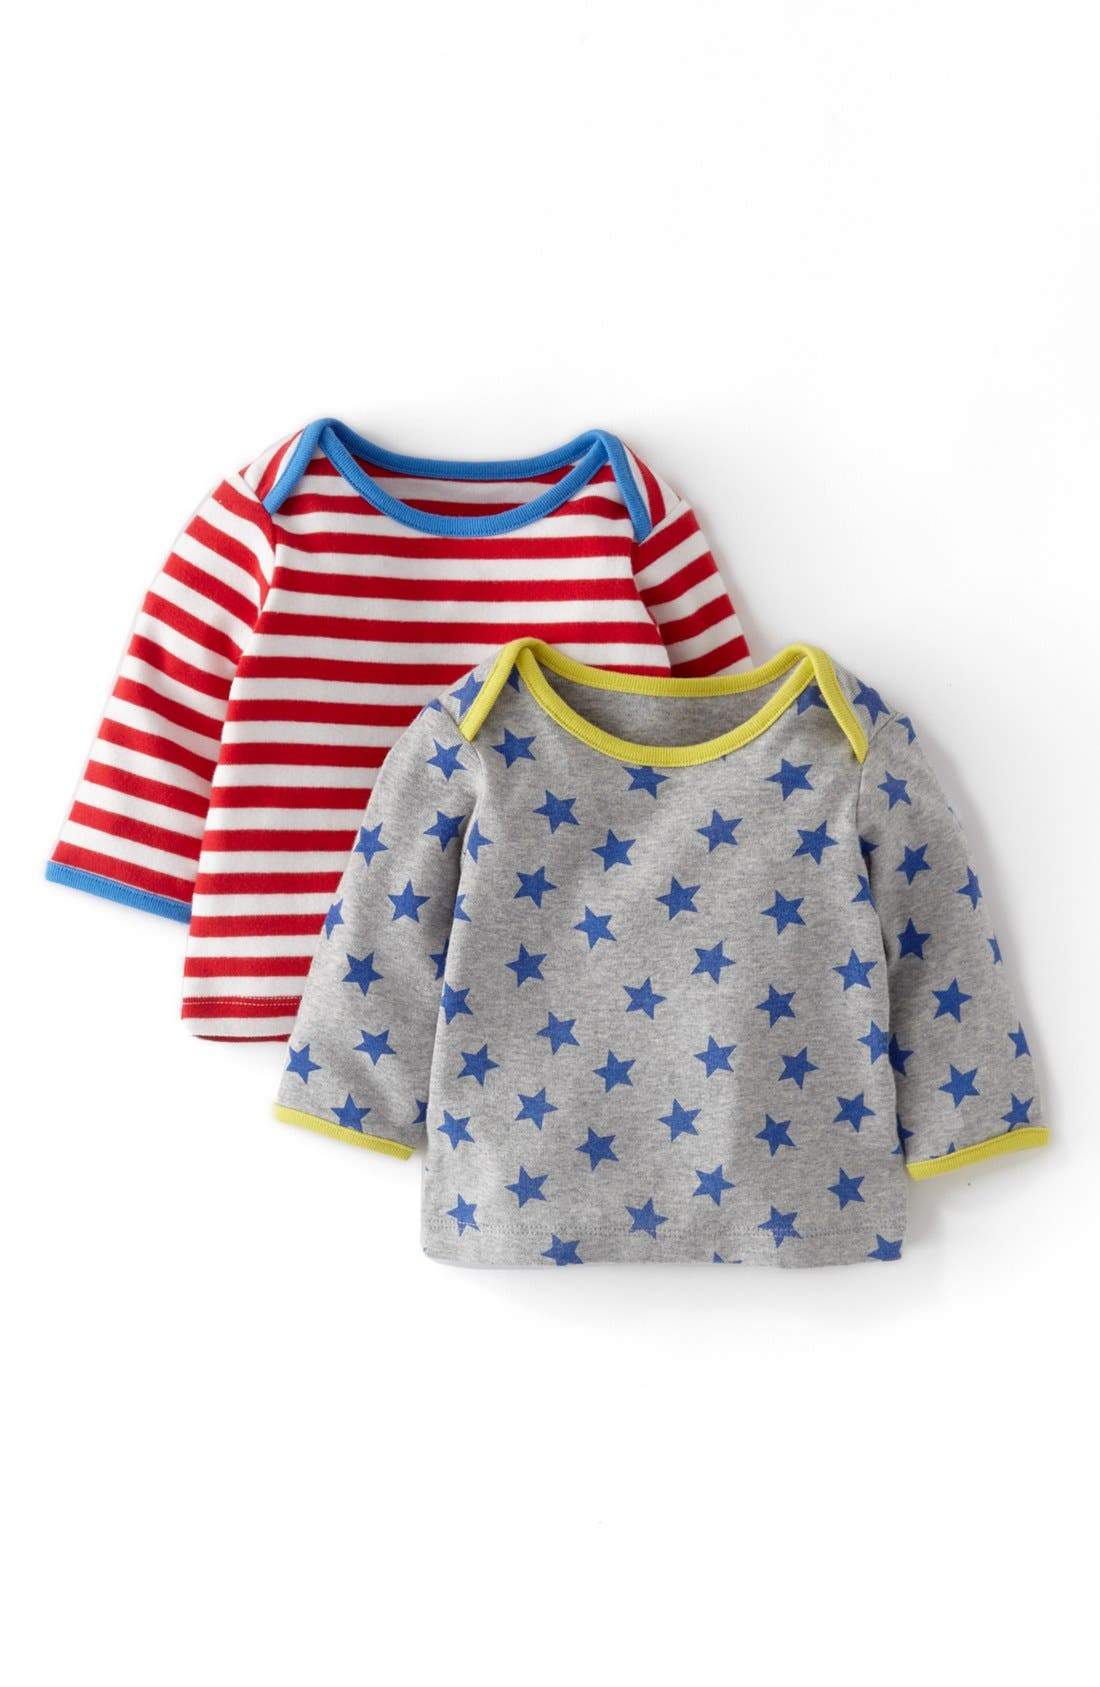 Alternate Image 1 Selected - Mini Boden Cotton Layering T-Shirt (2-Pack) (Baby Boys)